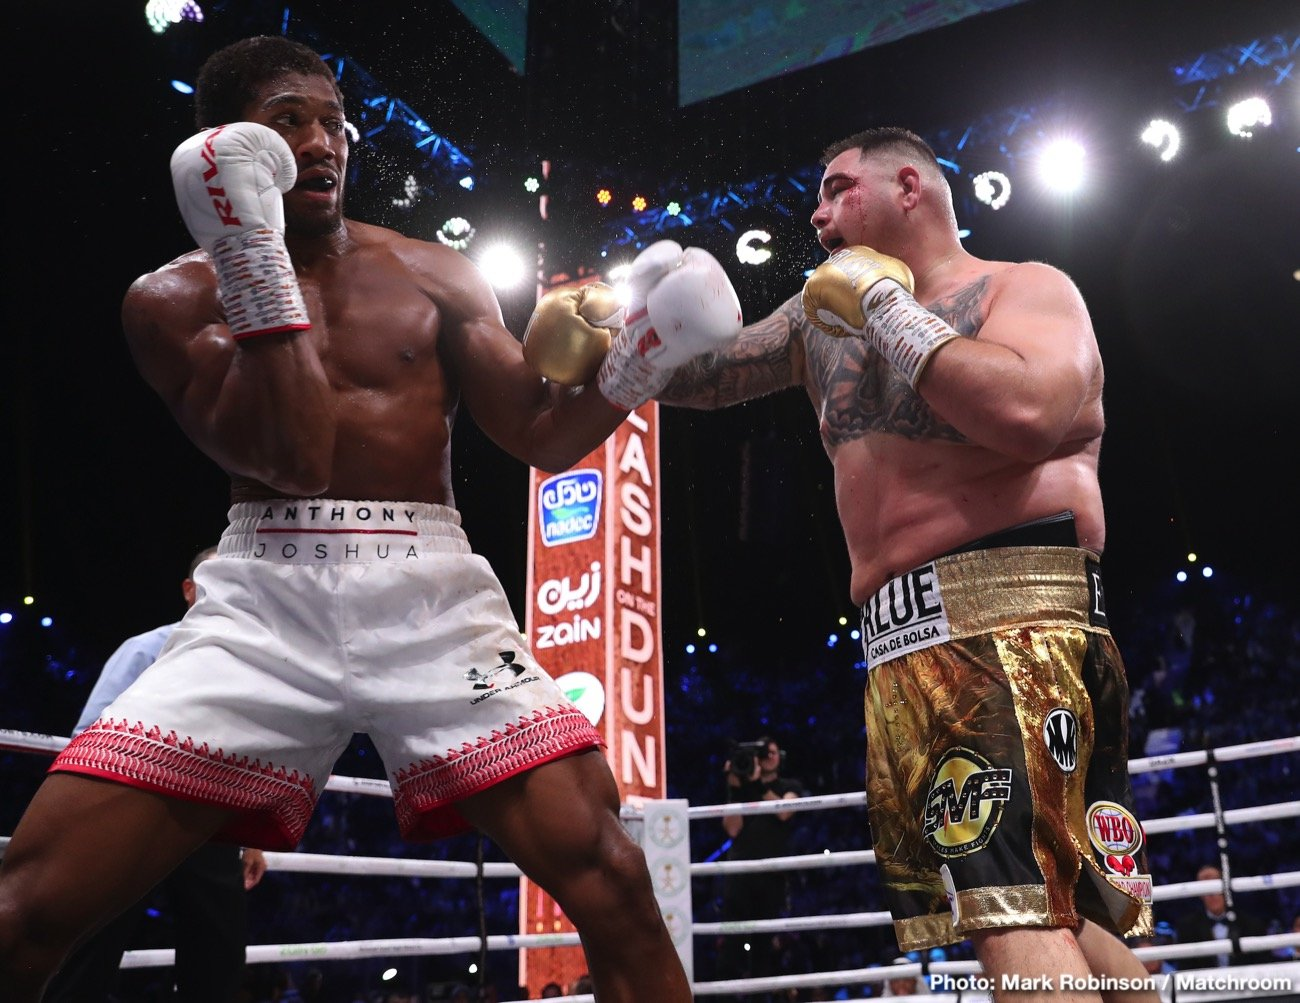 Andy Ruiz, Anthony Joshua, Deontay Wilder, Dillian Whyte, Joseph Parker, Kubrat Pulev, Oleksandr Usyk, Tyson Fury - The new year is almost upon us and 2020 promises to be some eventful year for the heavyweights. Over the next 12 months, we should see good, maybe great, maybe even all-time great big men Tyson Fury, Deontay Wilder, Anthony Joshua, Dillian Whyte, Oleksandr Usyk, Joseph Parker, Kubrat Pulev Andy Ruiz (?) and others, maybe Luis Ortiz, Jarrell Miller, Adam Kownacki, Dereck Chisora – and maybe even Wladimir Klitschko, Shannon Briggs and (ugh) Riddick Bowe – all trying their best to reap the rewards and the riches the sport's premiere division can bring.